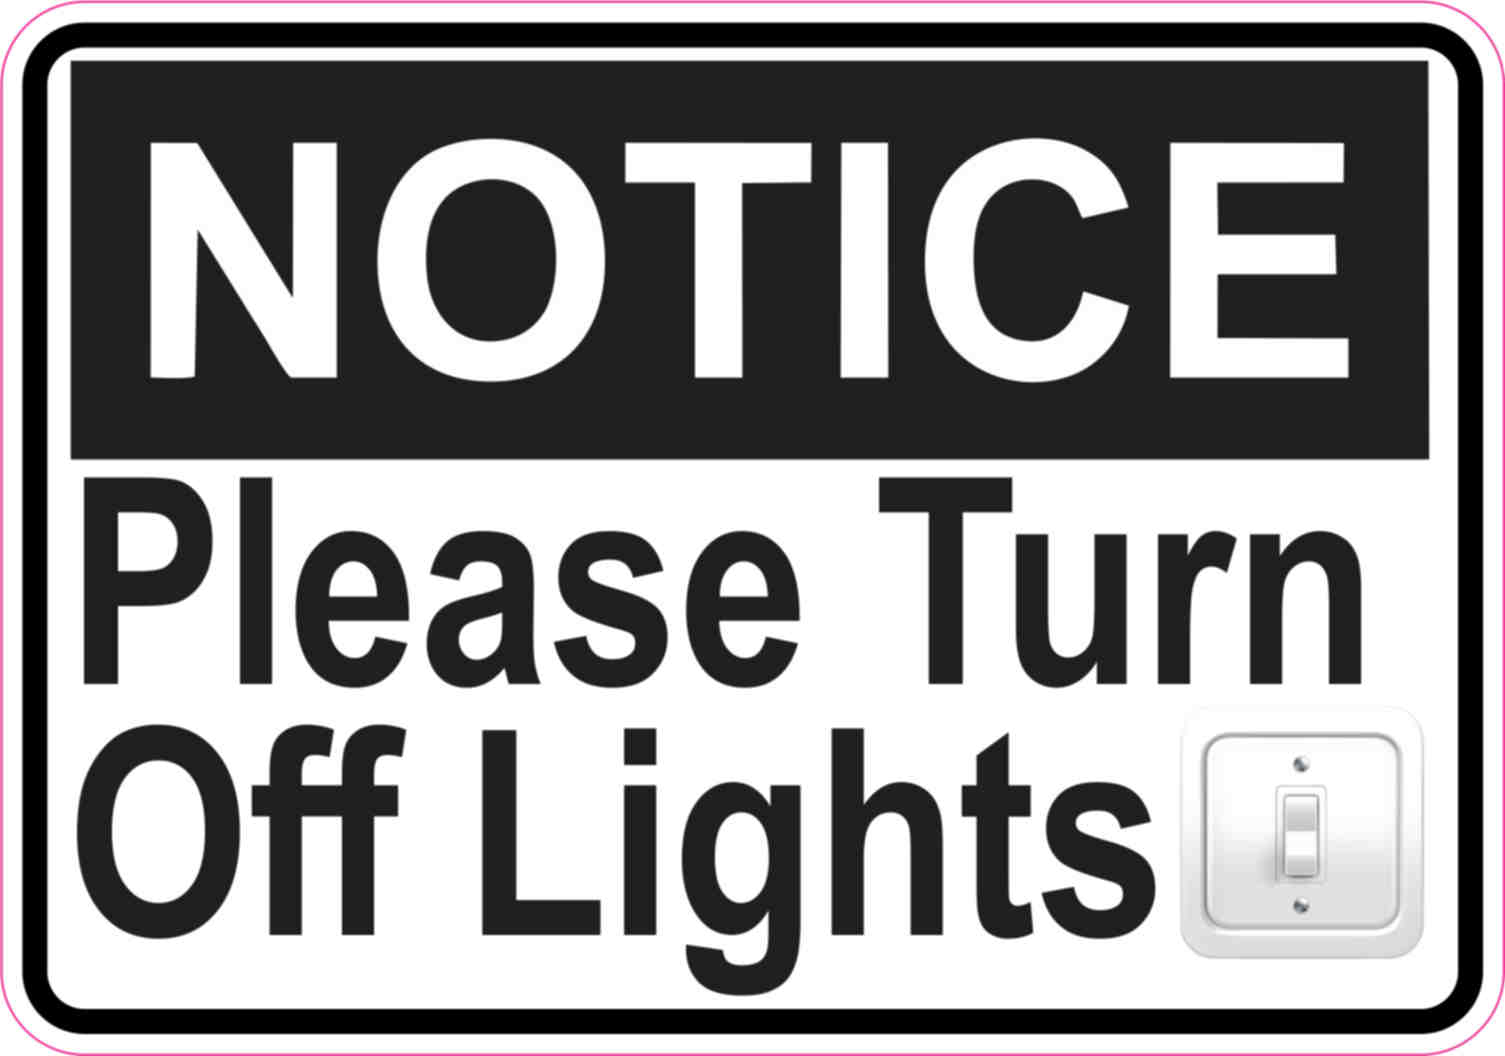 5x3.5 Notice Please Turn Off Lights Sticker Vinyl Door Sign Stickers ... for light switch off signs  45hul